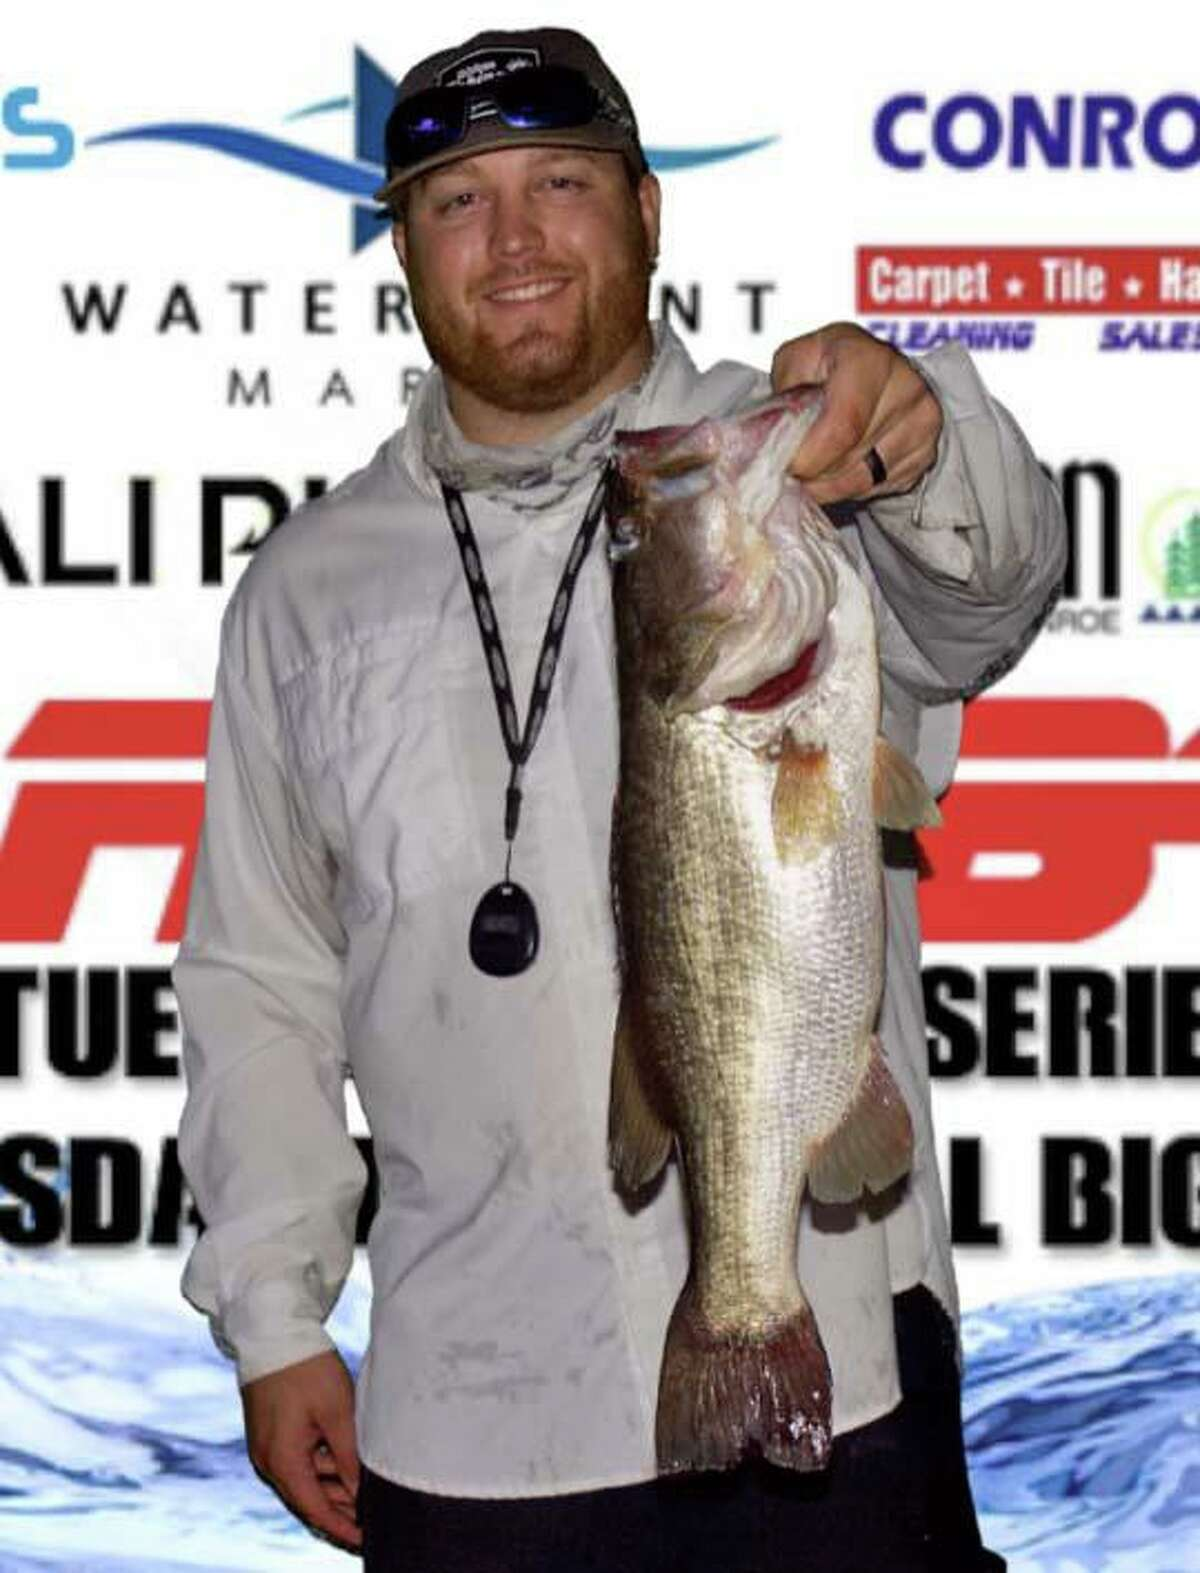 Bo Brown came in first place in the CONROEBASS Thursday Big Bass Tournament with a bass weighing 5.96 pounds.